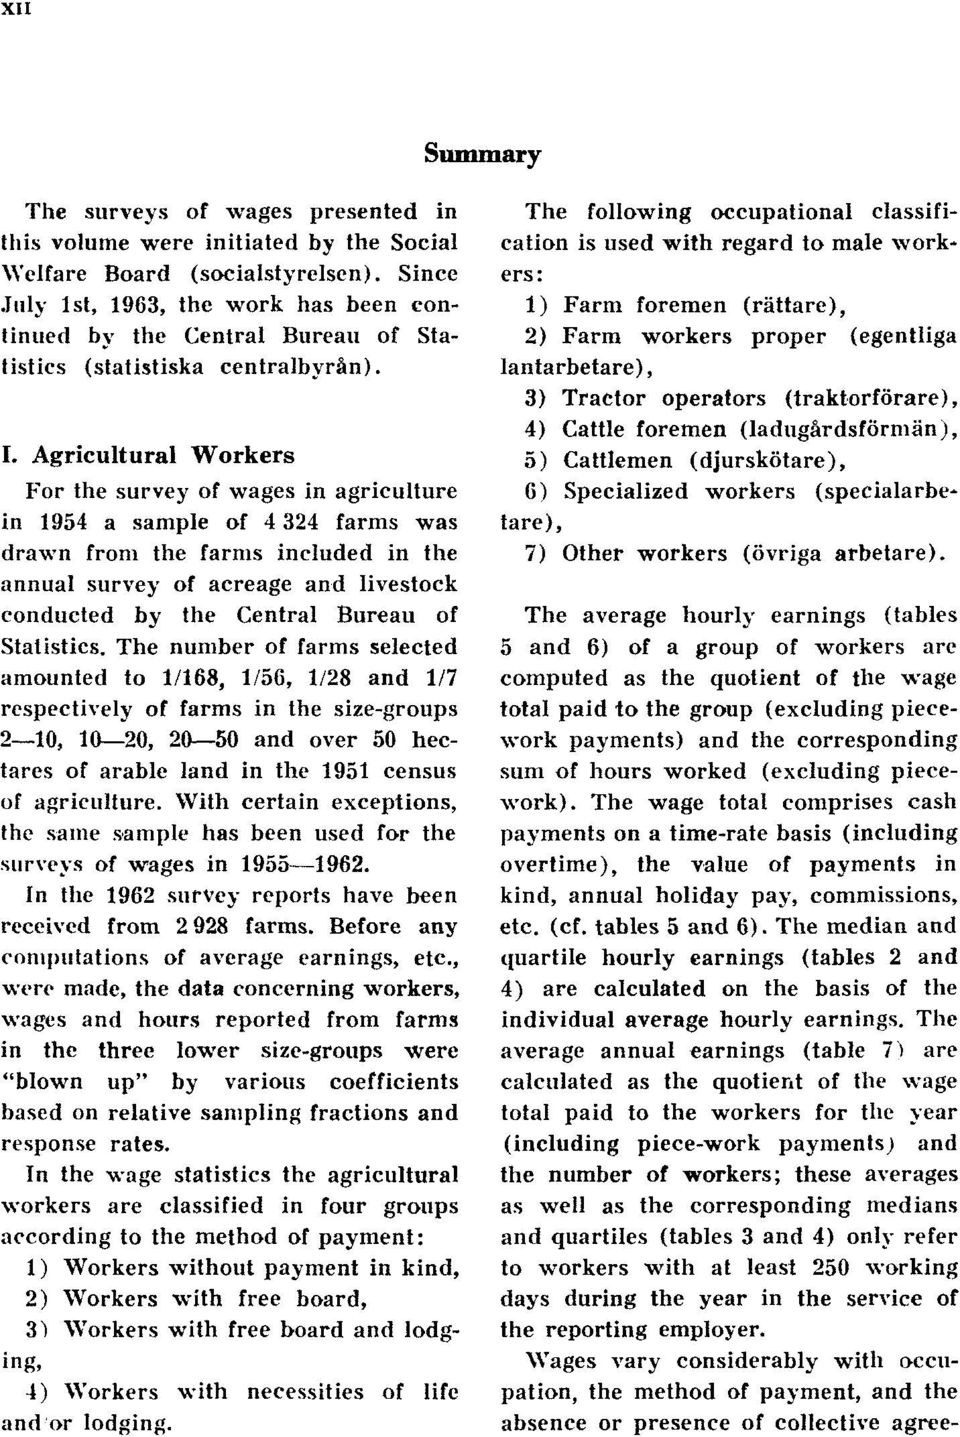 Agricultural Workers For th e surve y o f wage s i n agricultur e in 195 4 a sampl e o f 4 324 farm s wa s drawn fro m th e farm s include d i n th e annual surve y o f acreag e an d livestoc k